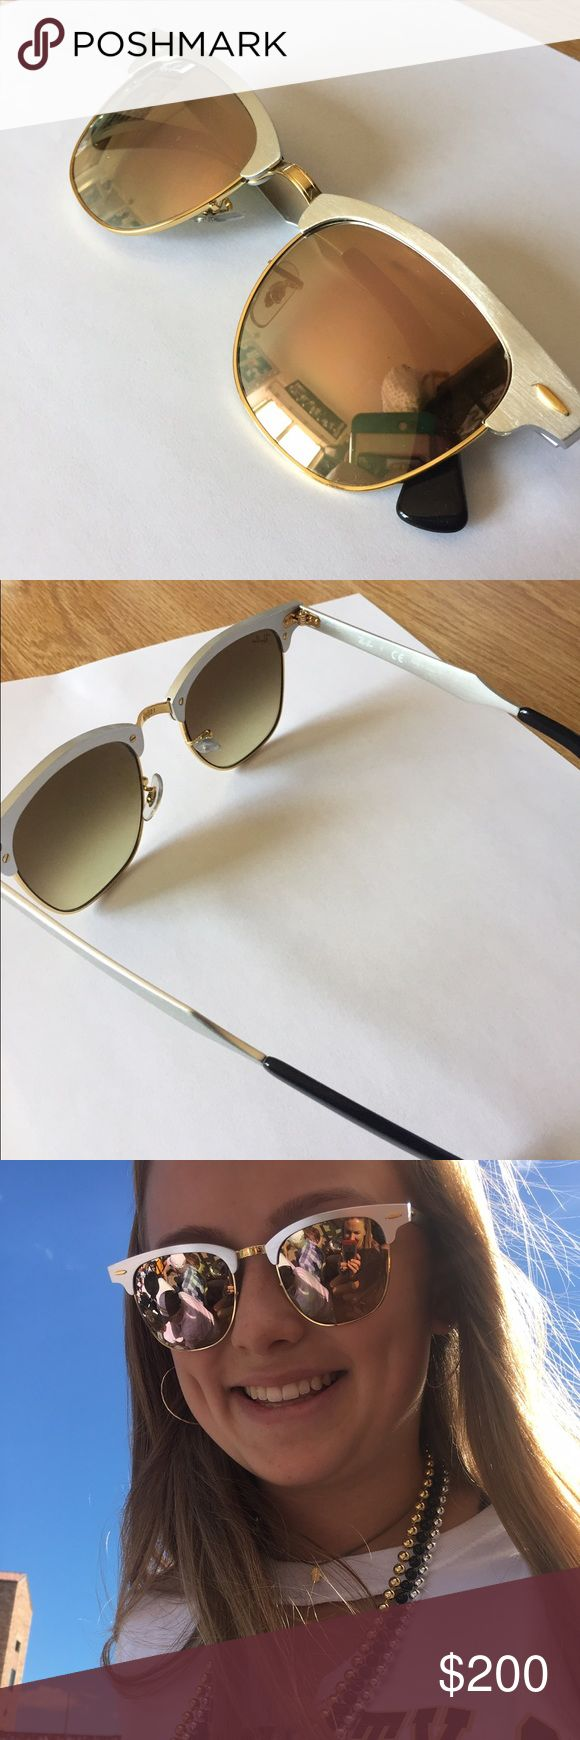 Ray-Ban Clubmaster Aluminum Sunglasses clubmaster sunglasses, aluminum (silver with copper mirror), brand new only worn a few times, really comfortable and heavy duty. Ray-Ban Accessories Sunglasses